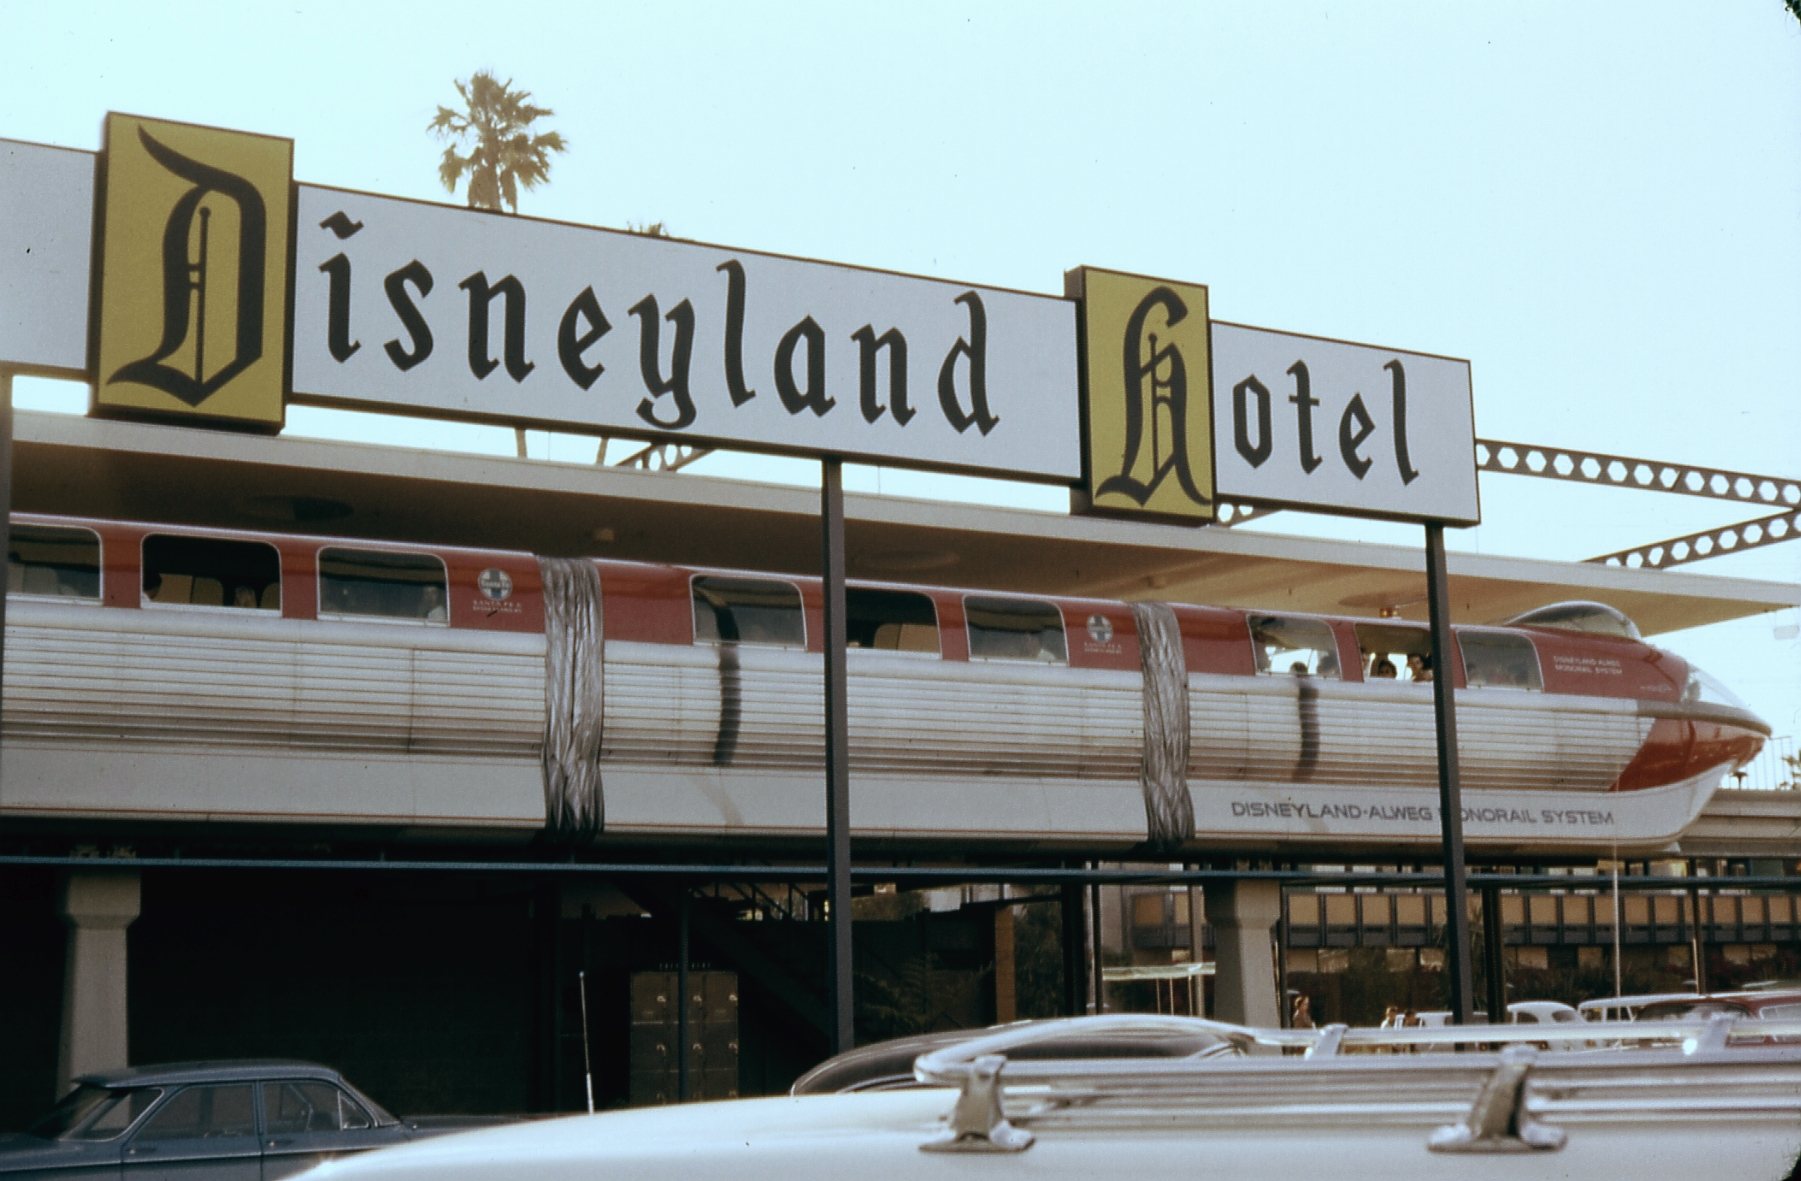 The original red Mark I ALWEG Monorail train, with one car added, and then designated Mark II. Both trains were created especially for Disneyland. The other train was identical, but blue color. Seen at the Disneyland Hotel station, in August, 1963